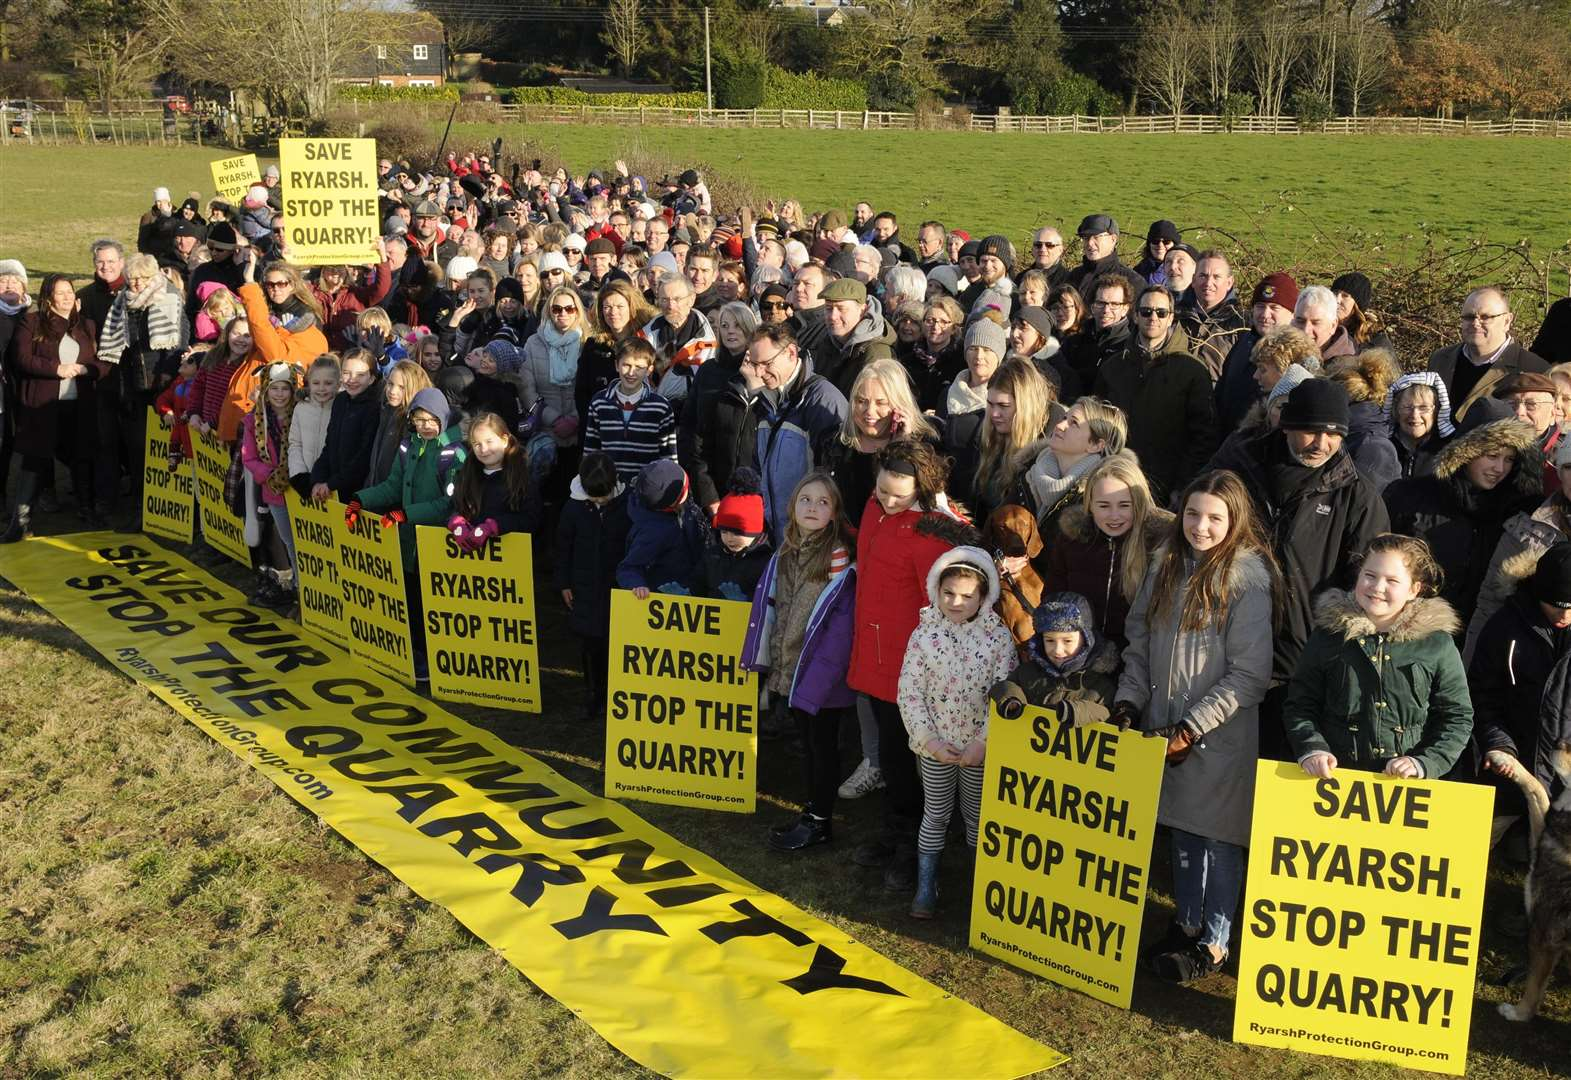 Villagers' latest rally against sandpit